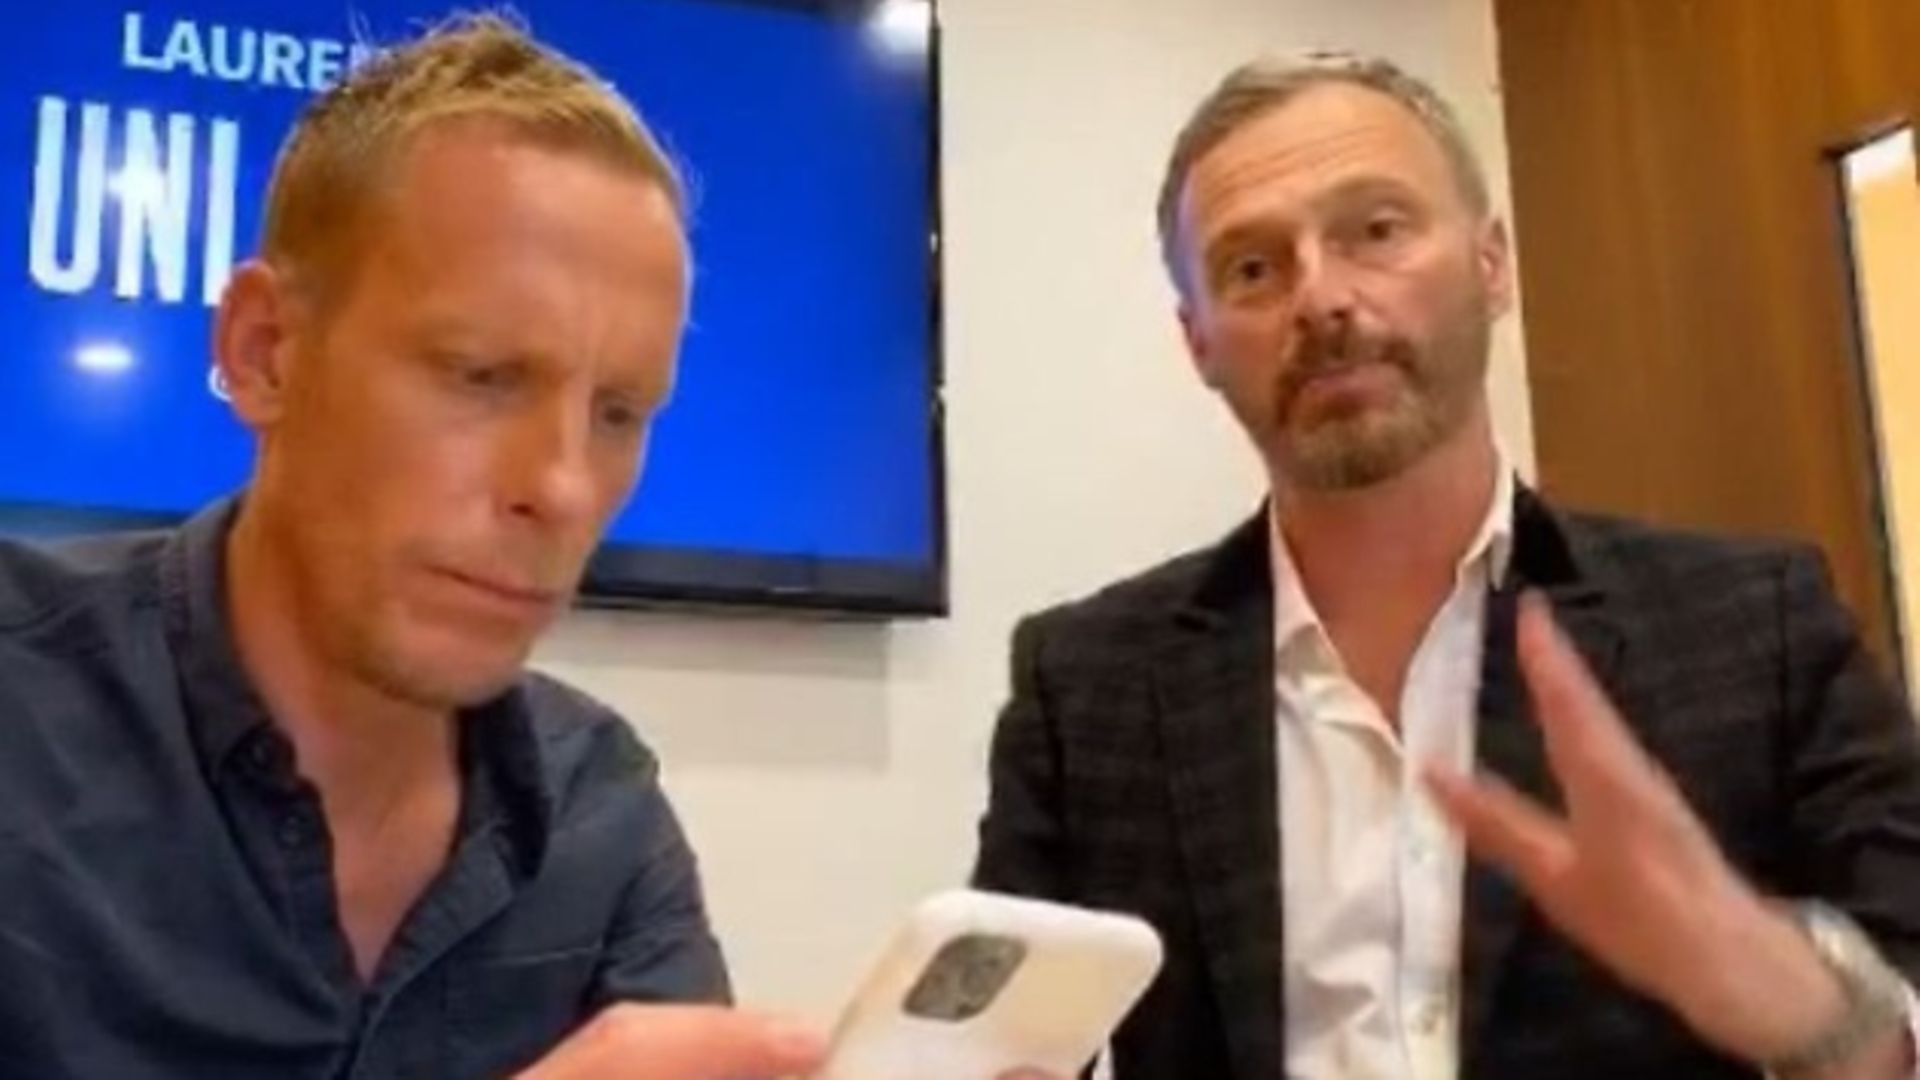 Actor Laurence Fox (L) and former Brexit Party MEP Martin Daubney (R). Photograph: Twitter. - Credit: Twitter